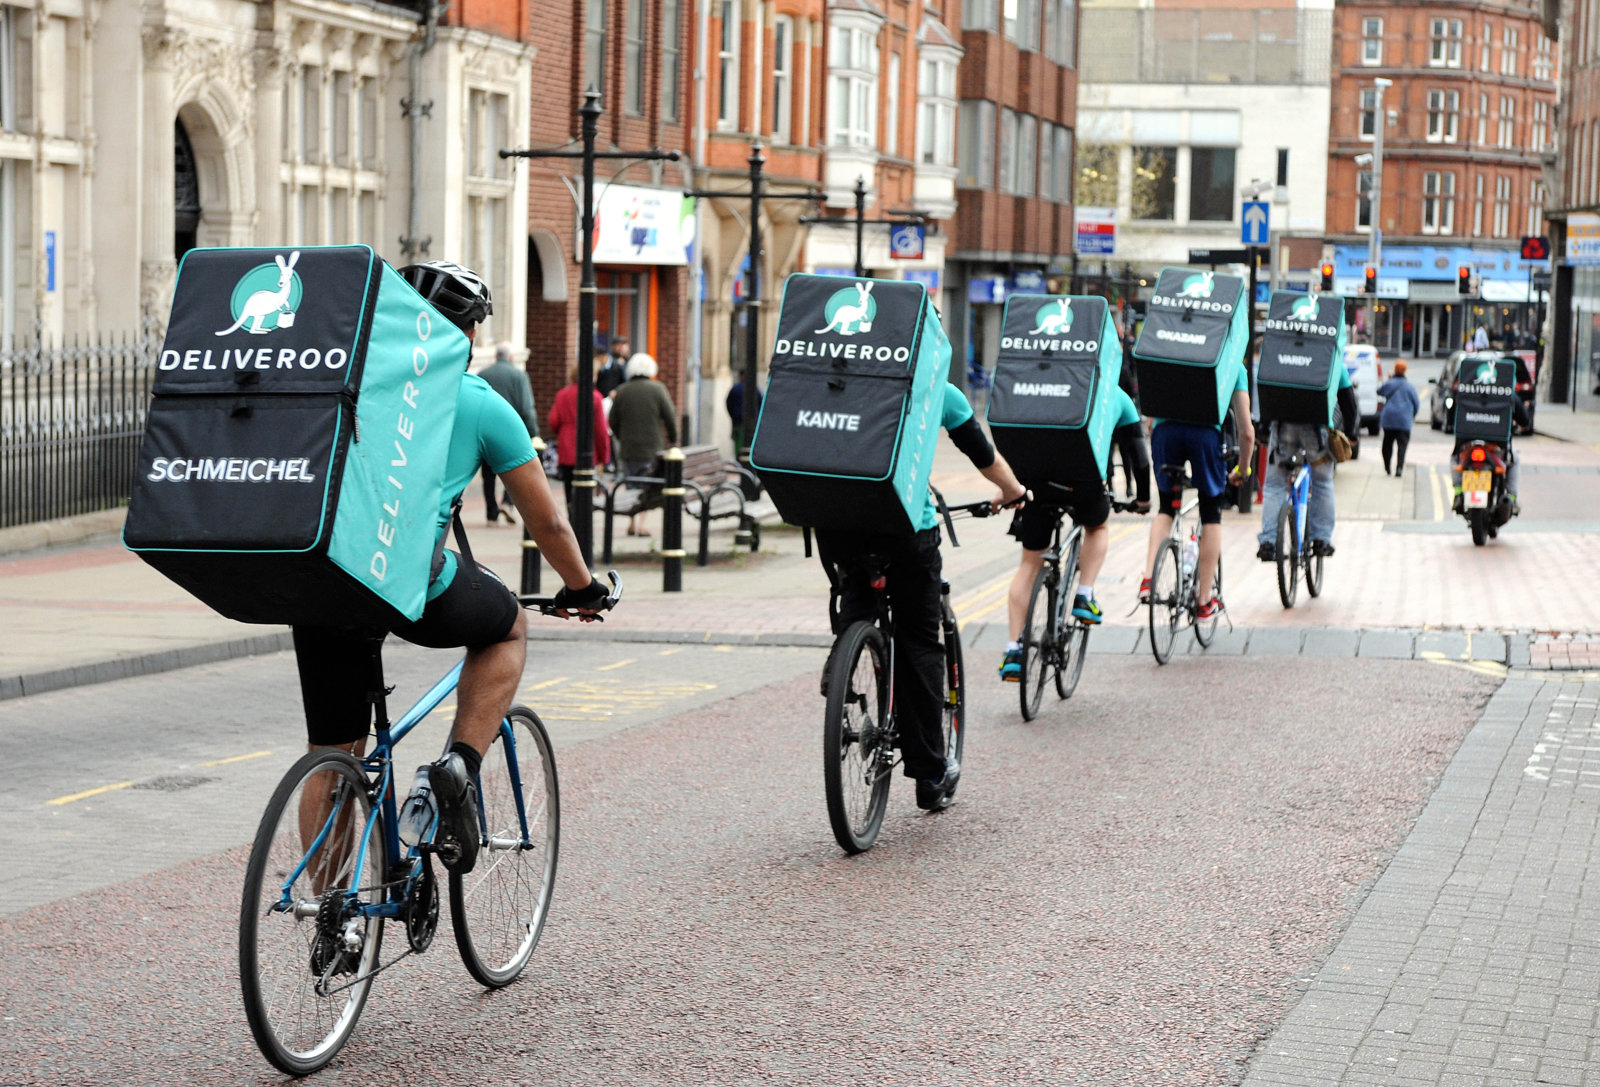 deliveroo biking